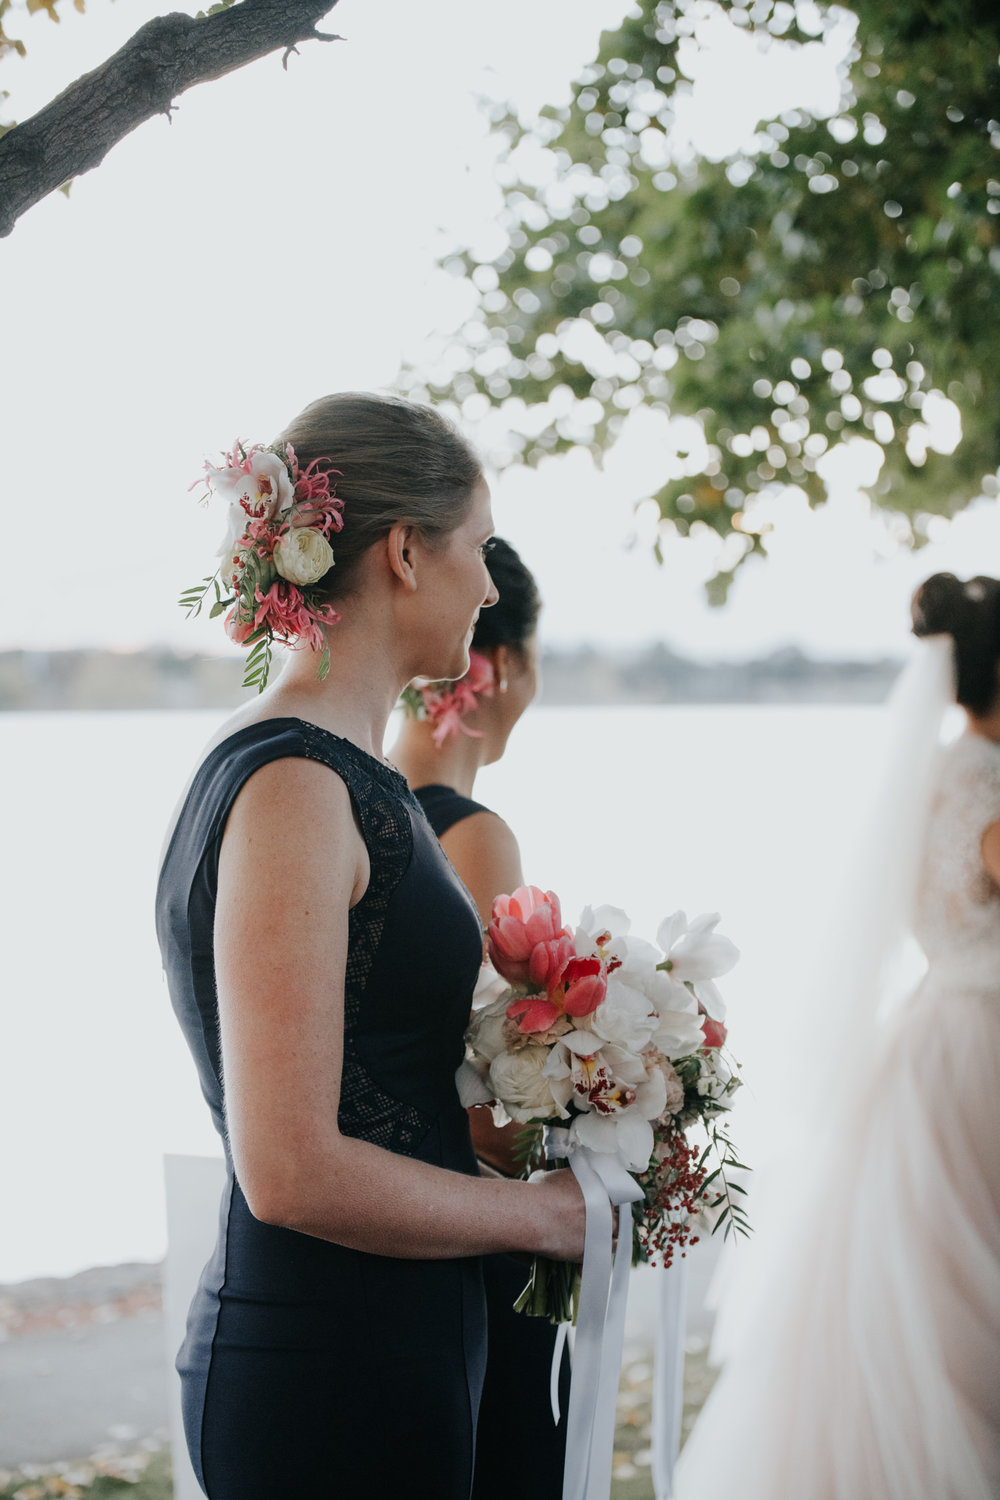 Moxom Whitney Florals The Boathouse Wedding Ceremony Canberra - Photography Jenny Wu Straight No Chaser